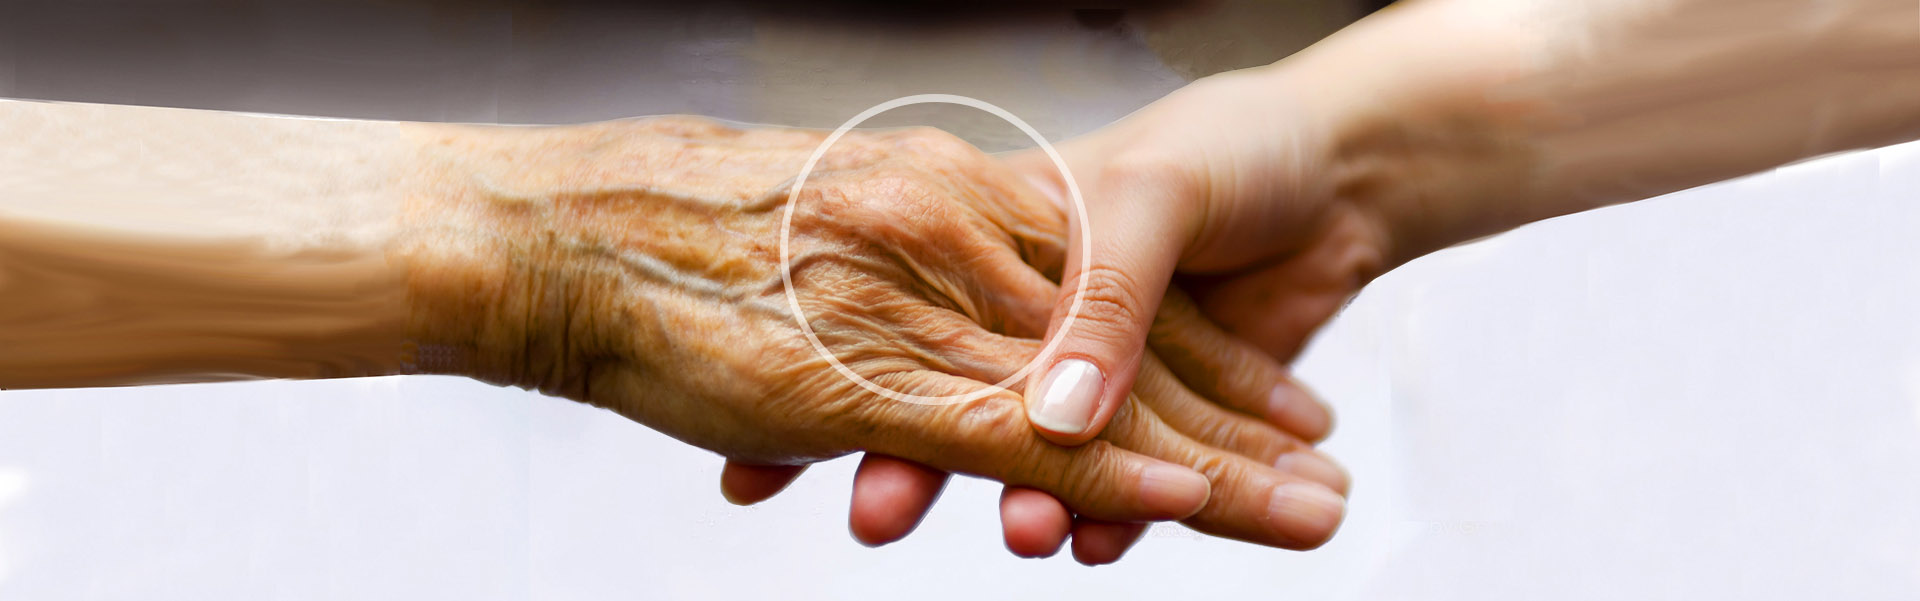 Arthritis care and treatment with young woman is holding a senior woman's hand for help.